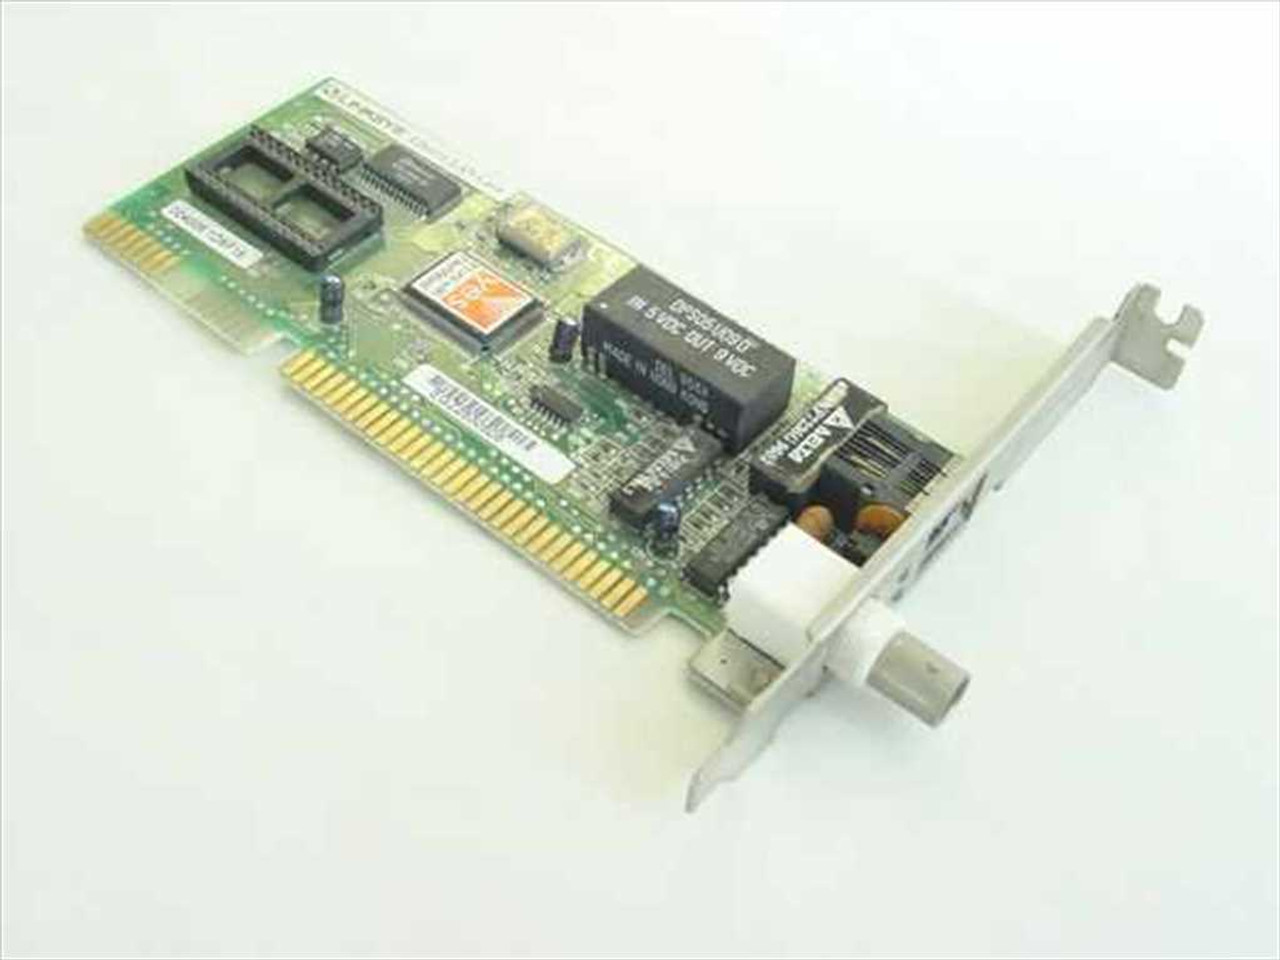 Isa networks inc - Linksys Lan Isa Network Card With Coax Ethernet Connector Ether16